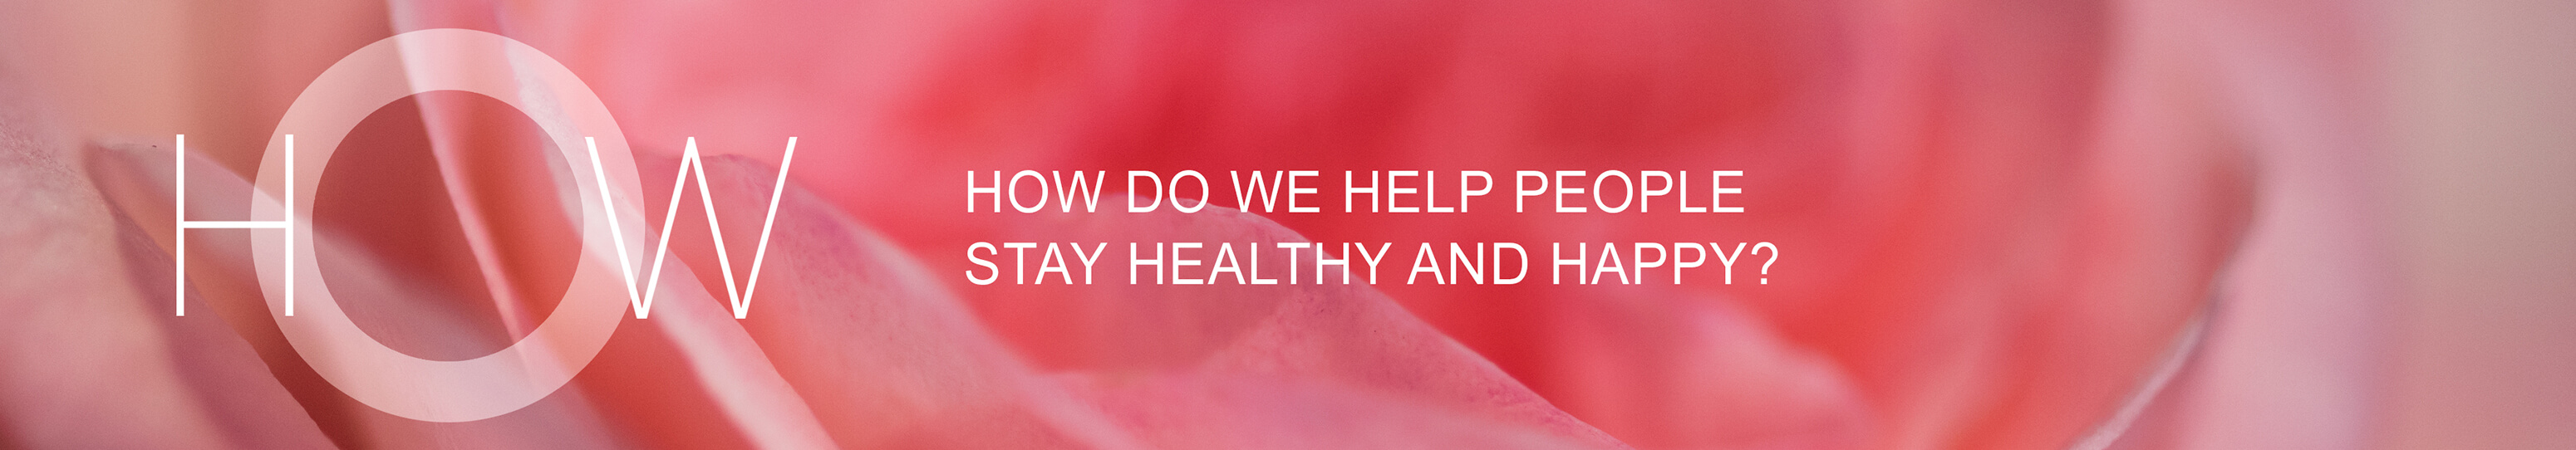 How do we help people stay healthy and happy?